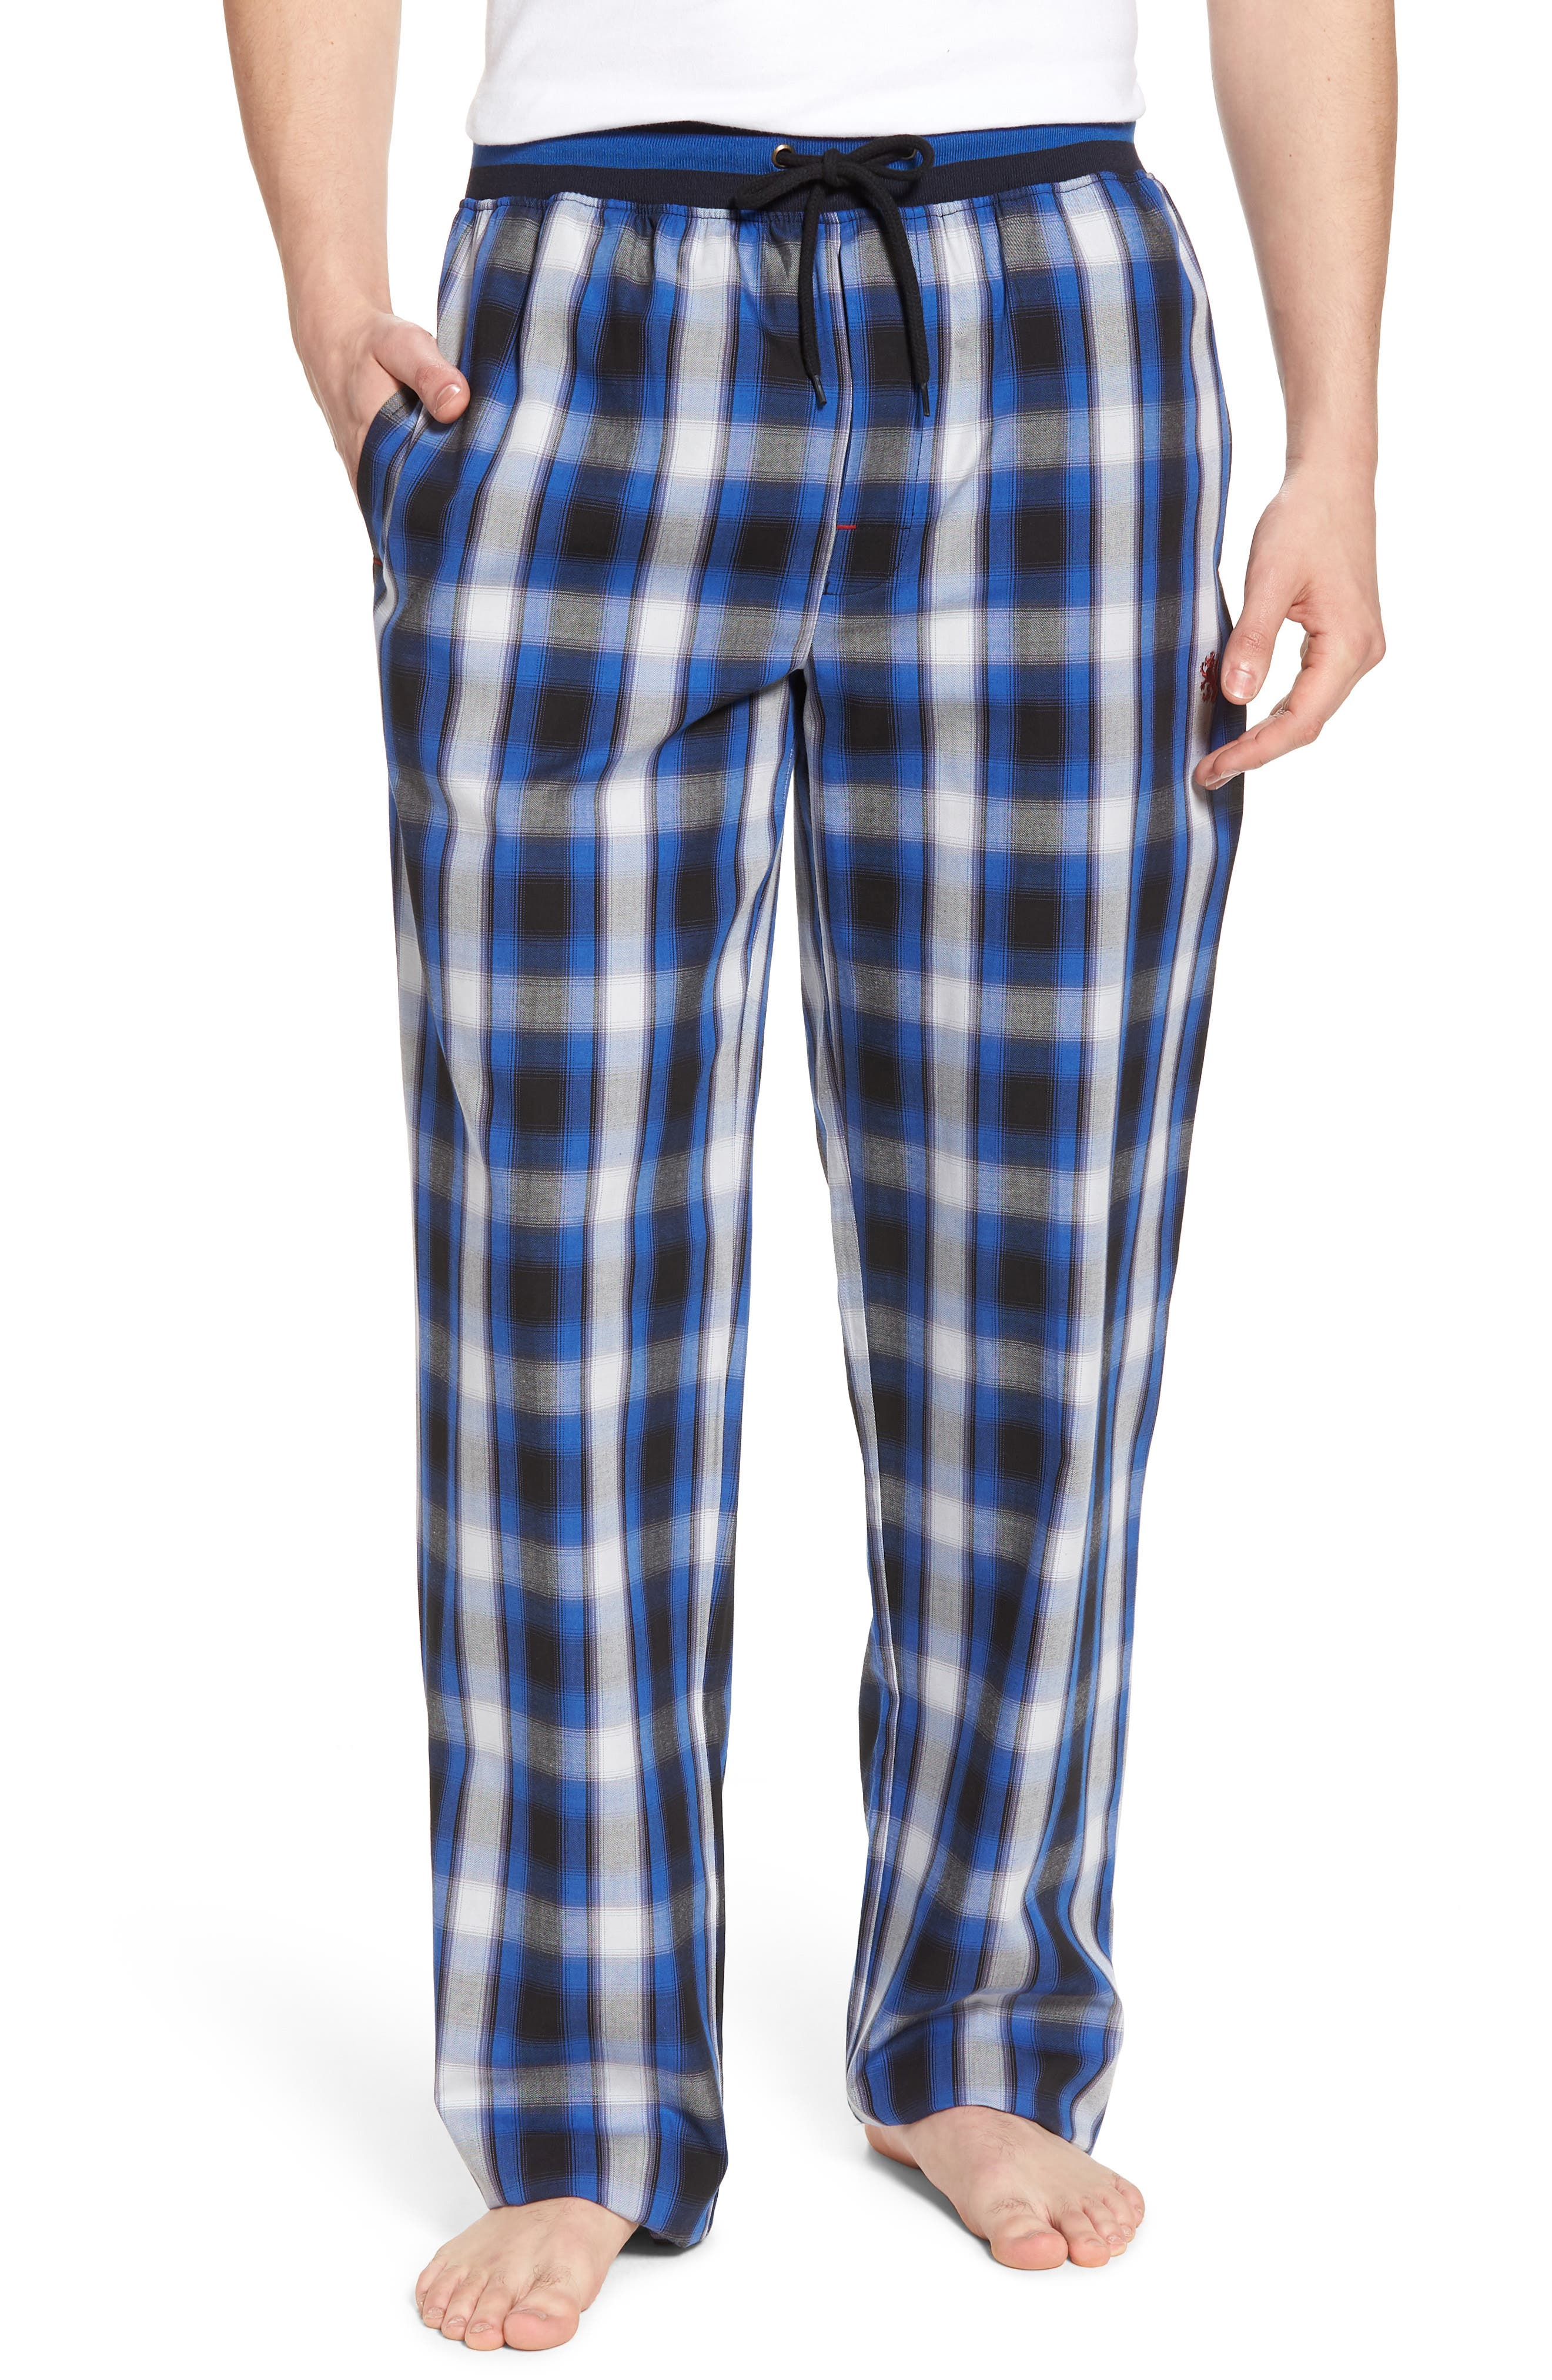 Urbane Lounge Pants,                             Main thumbnail 1, color,                             001